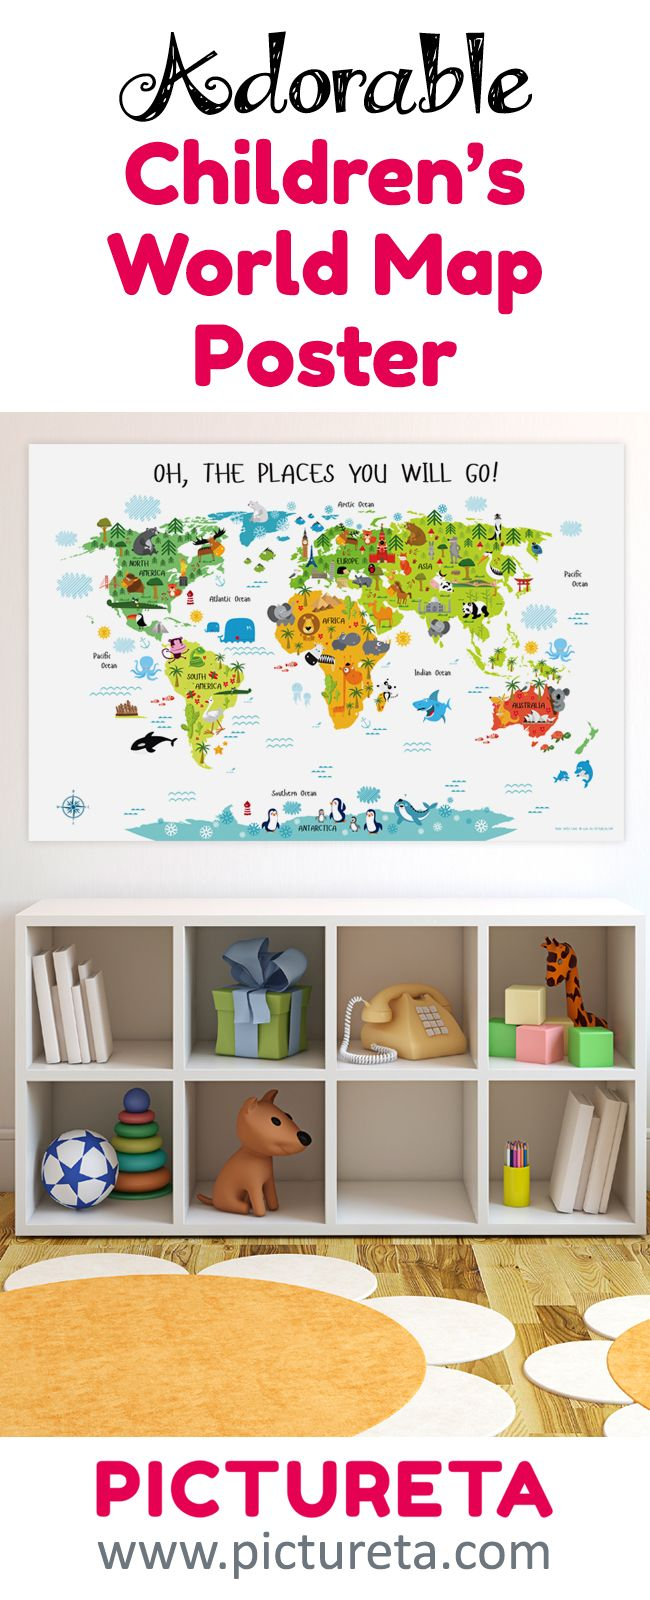 Childrens world map poster unique baby gifts first birthday gift childrens world map poster unique baby gift nursery decor nursery wall art gumiabroncs Gallery